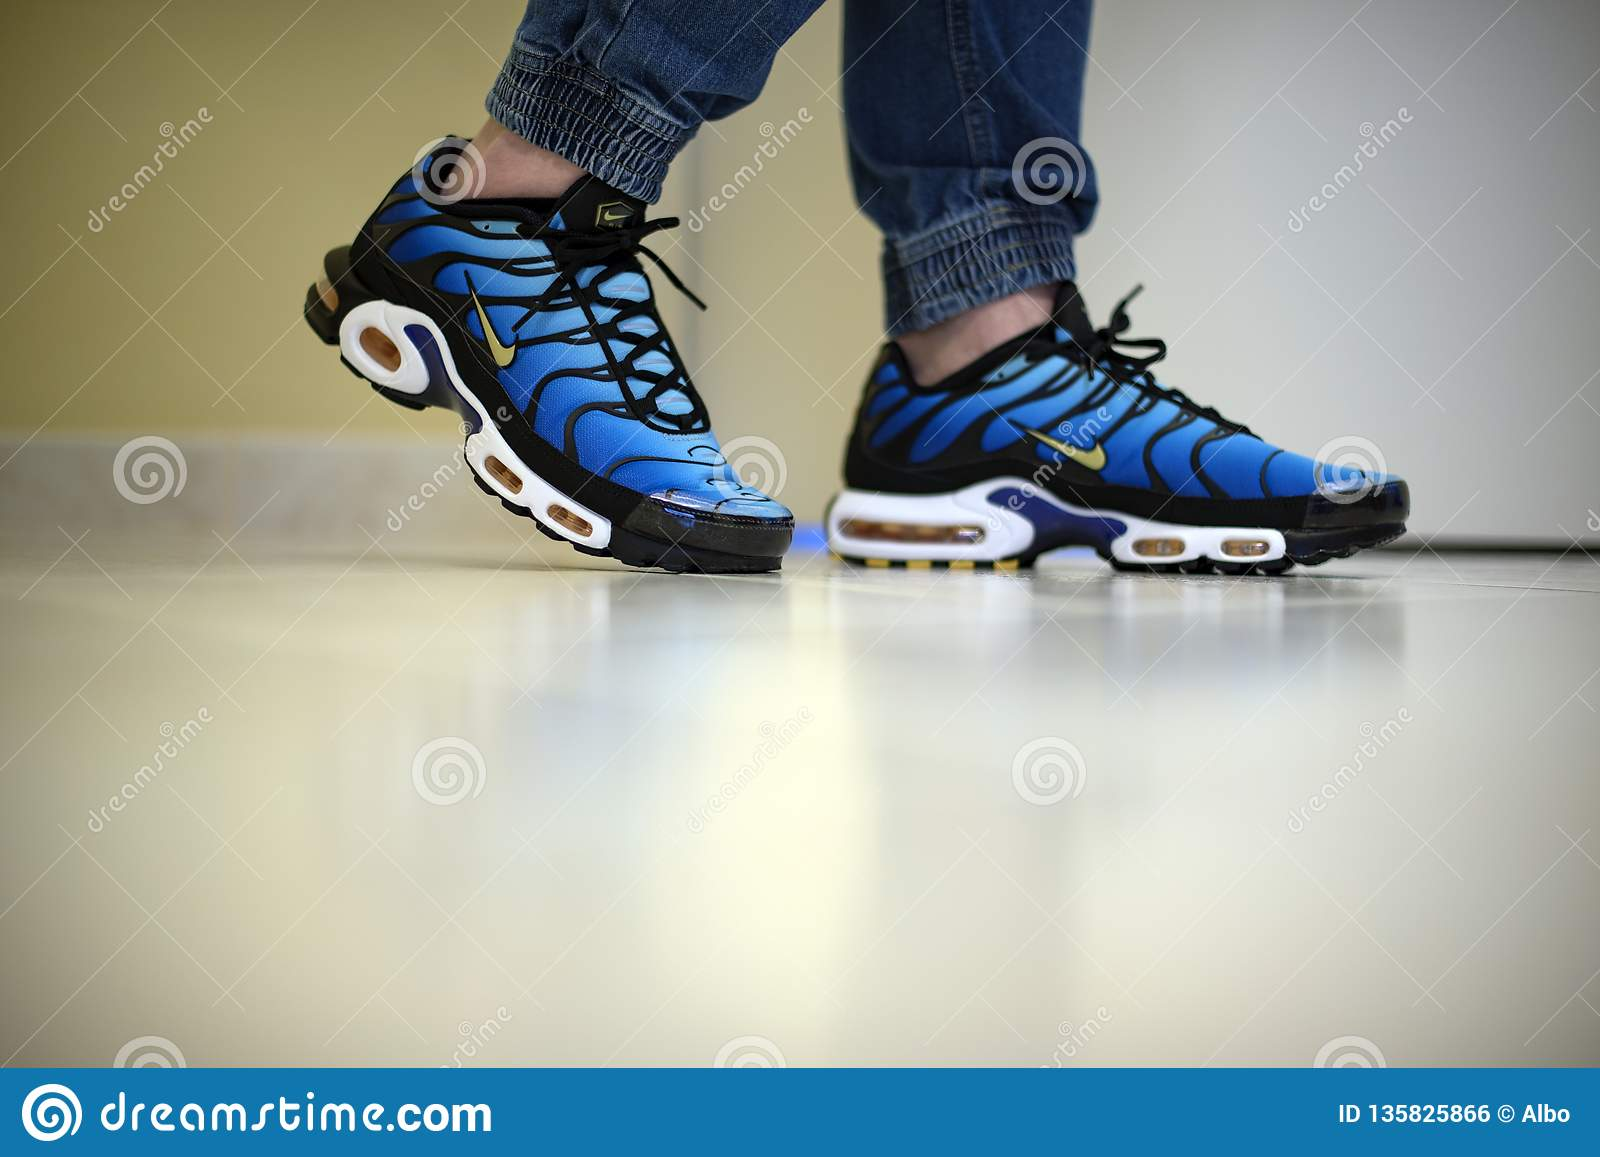 fc733dfb Milan, Italy - December 1, 2018: Young man wearing Nike Air Max Plus TN  Hyperblue shoes in the street - illustrative editorial